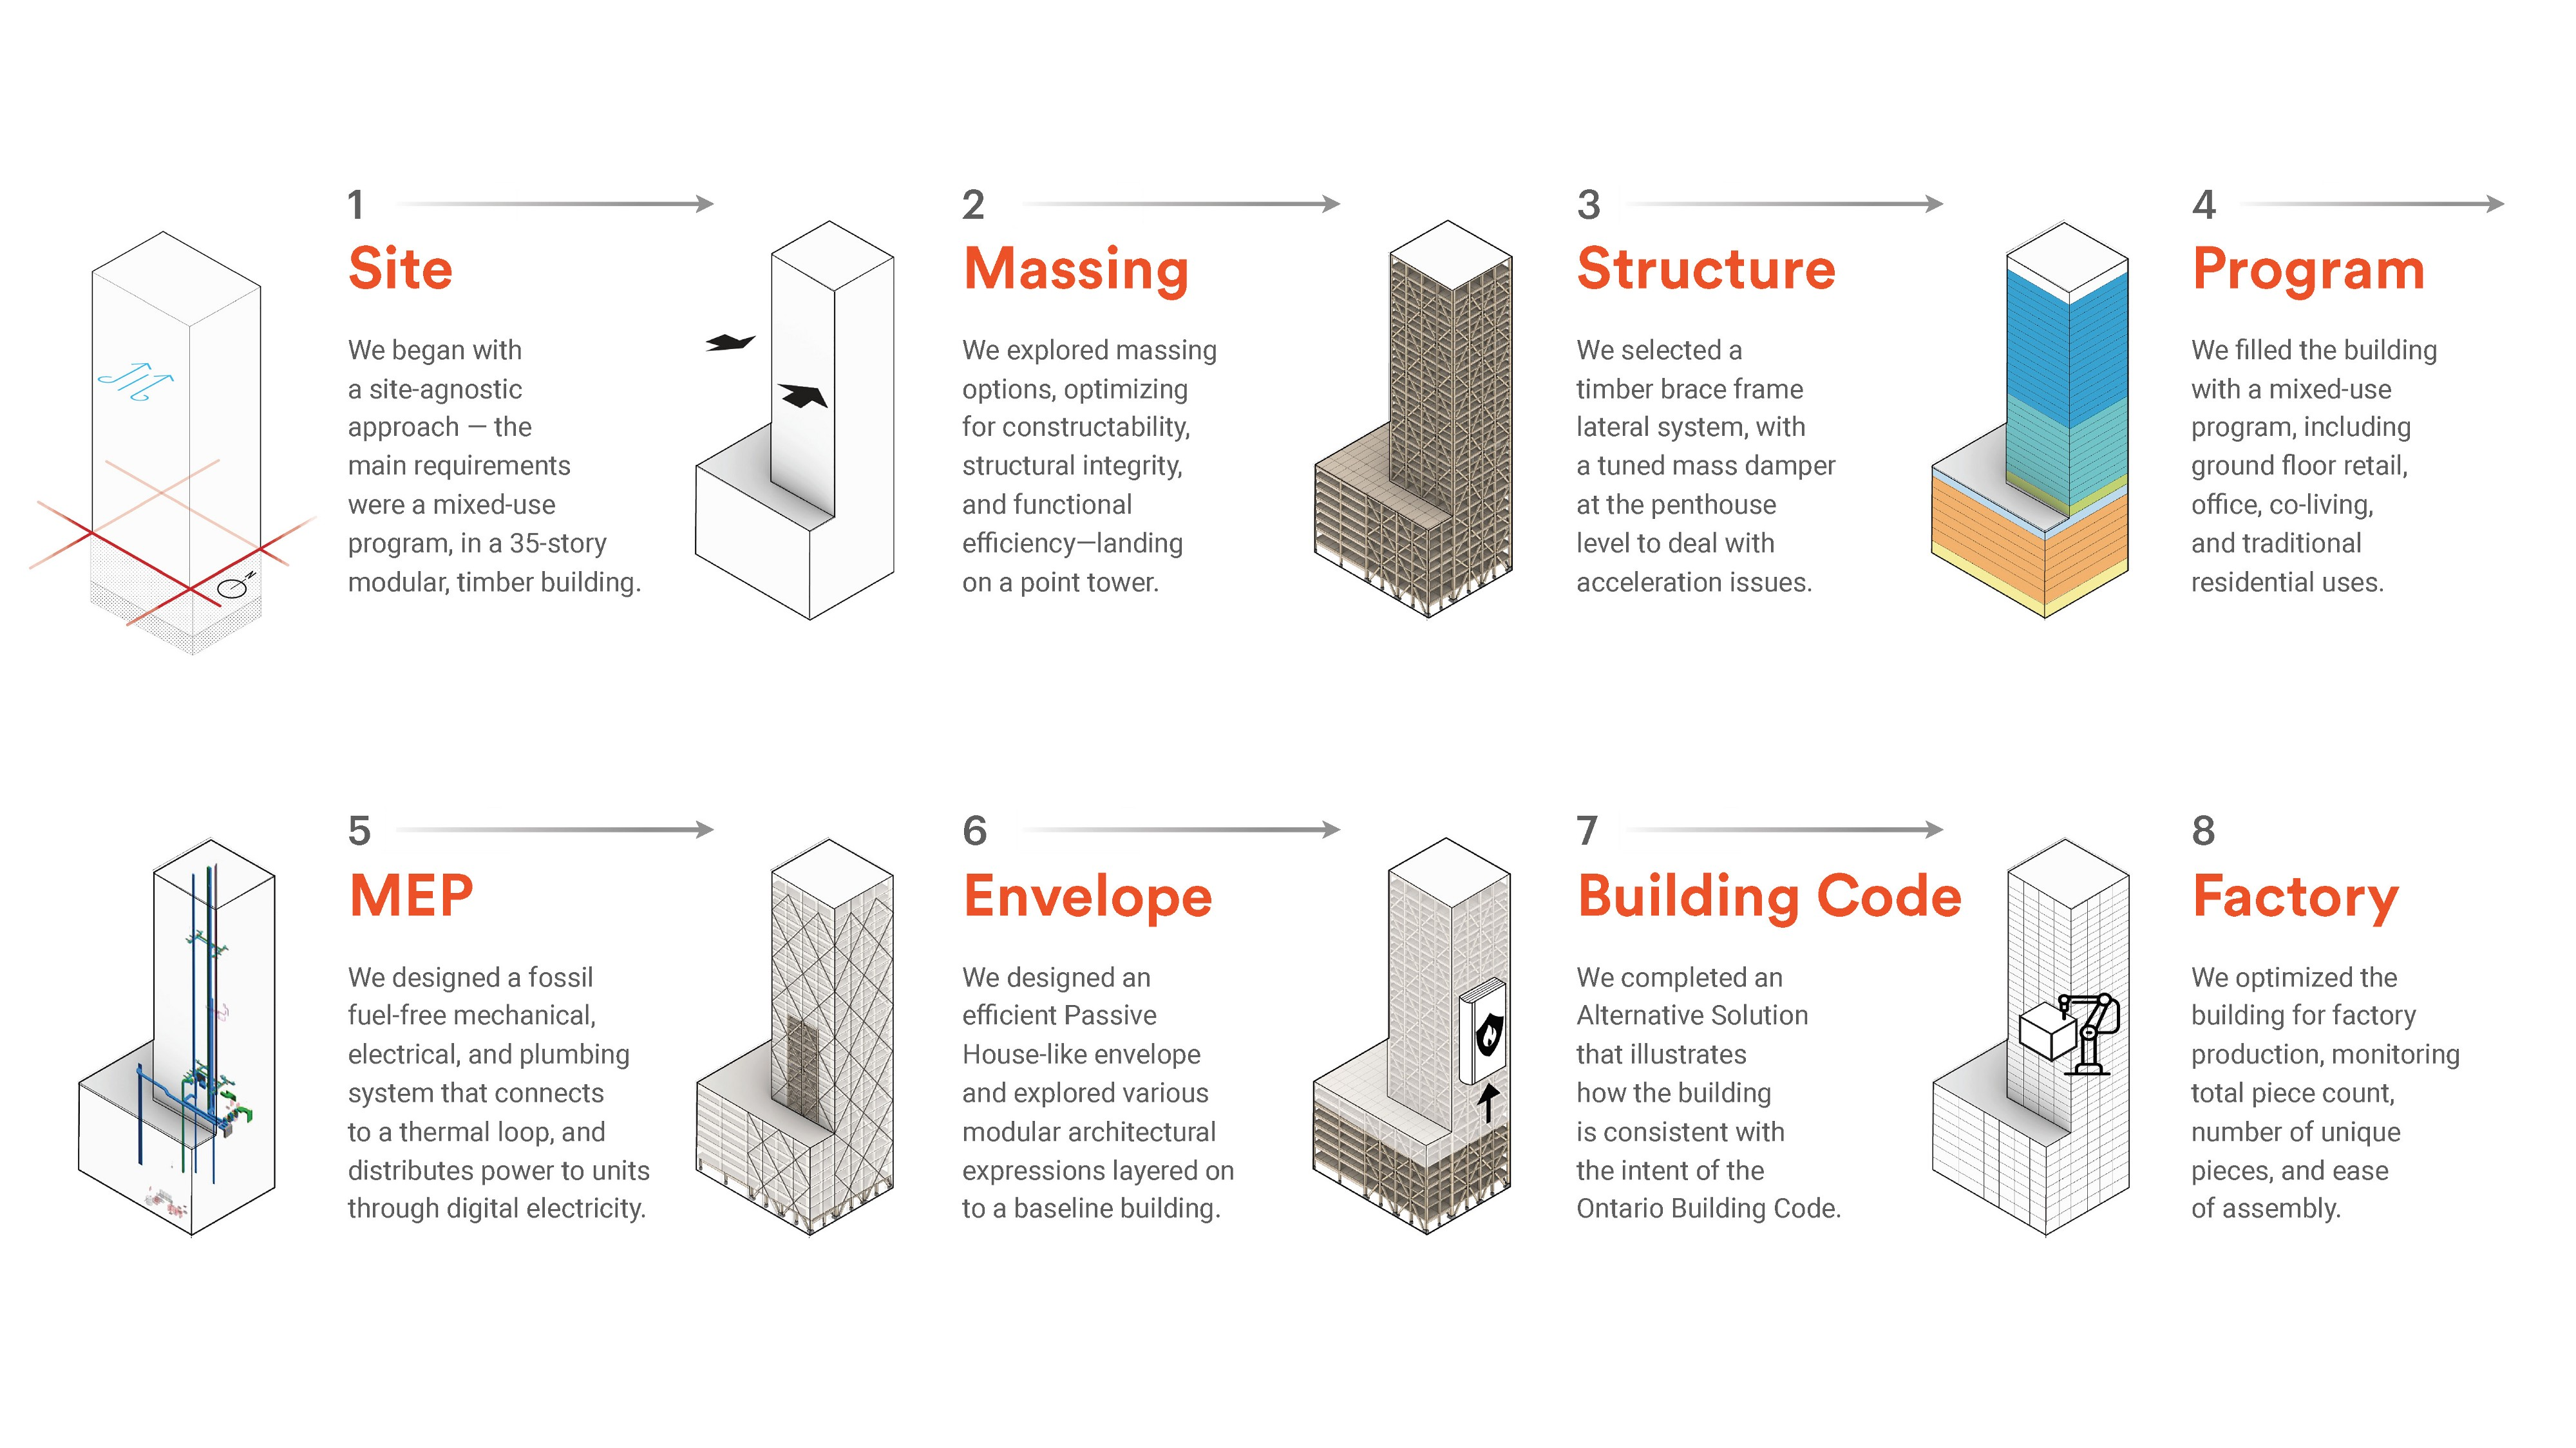 Graphic illustrates the eight steps of PMX: Site, massing, structure, program, MEP, envelope, building code, and factory.